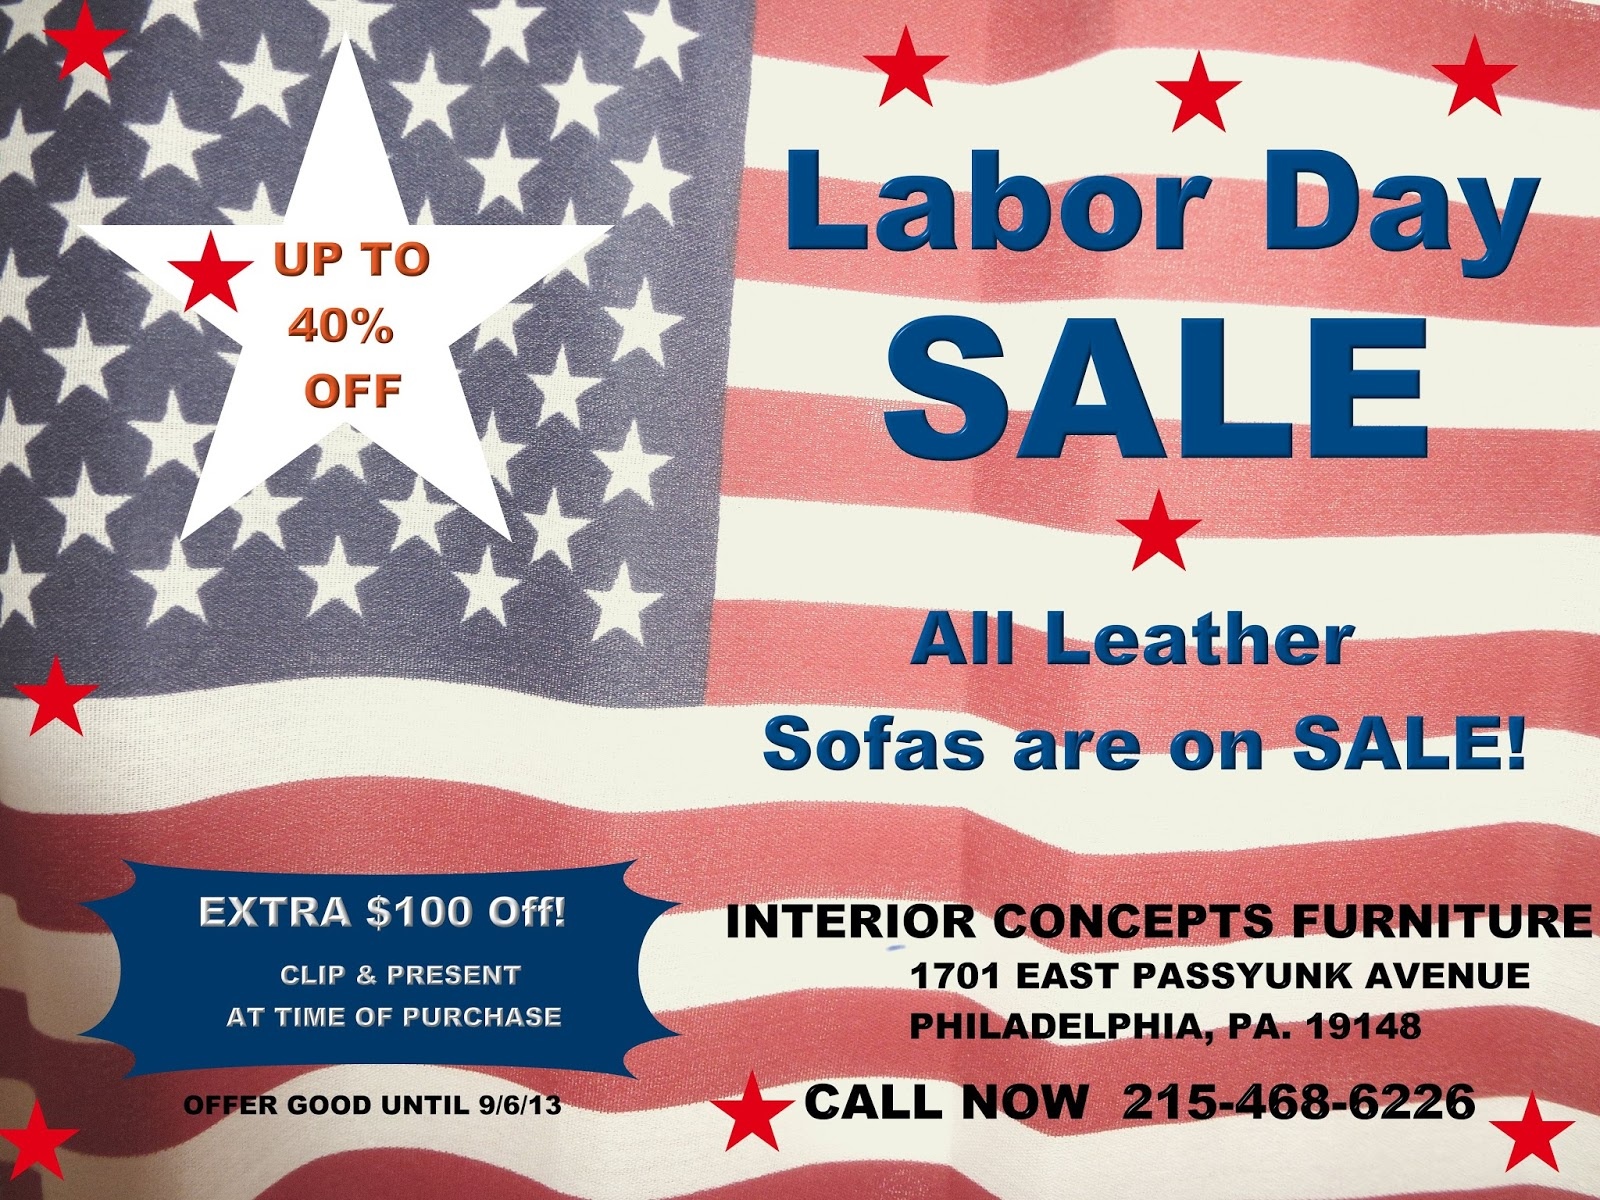 Sofa Mart Labor Day Sale Buy Cheapest Set Online India Natuzzi Leather Sofas And Sectionals By Interior Concepts